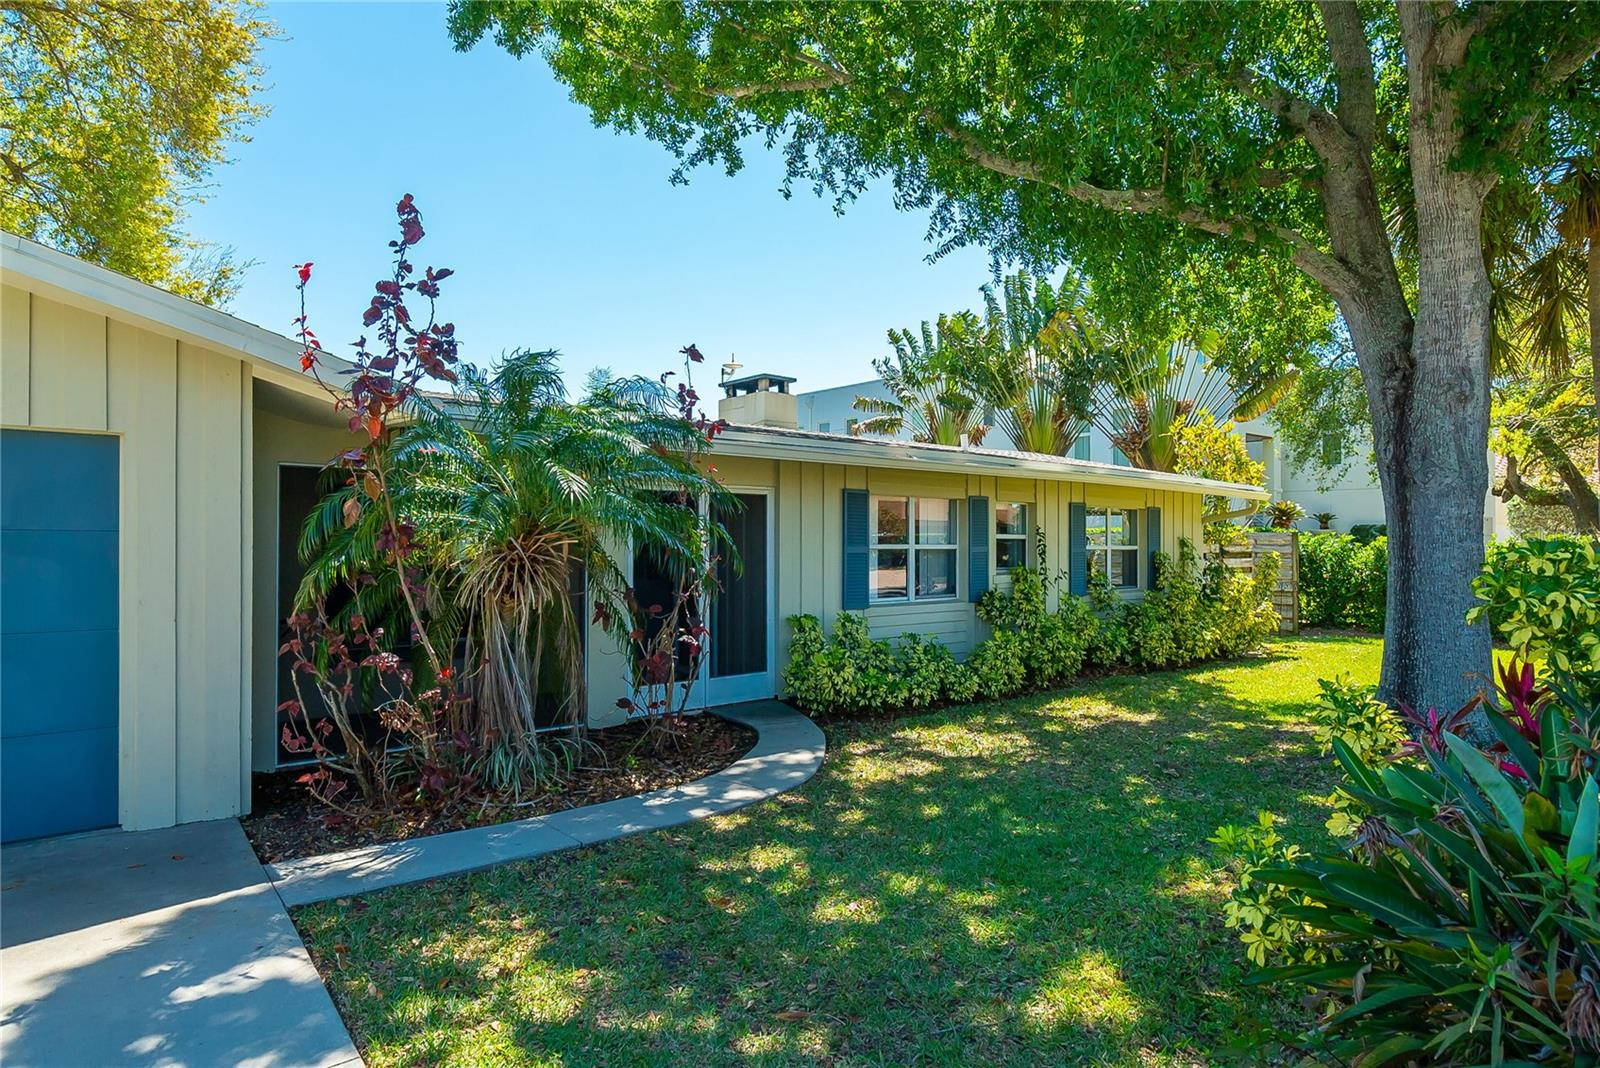 New Attachment - Single Family Home for sale at 1722 Stanford Ln, Sarasota, FL 34231 - MLS Number is A4494930